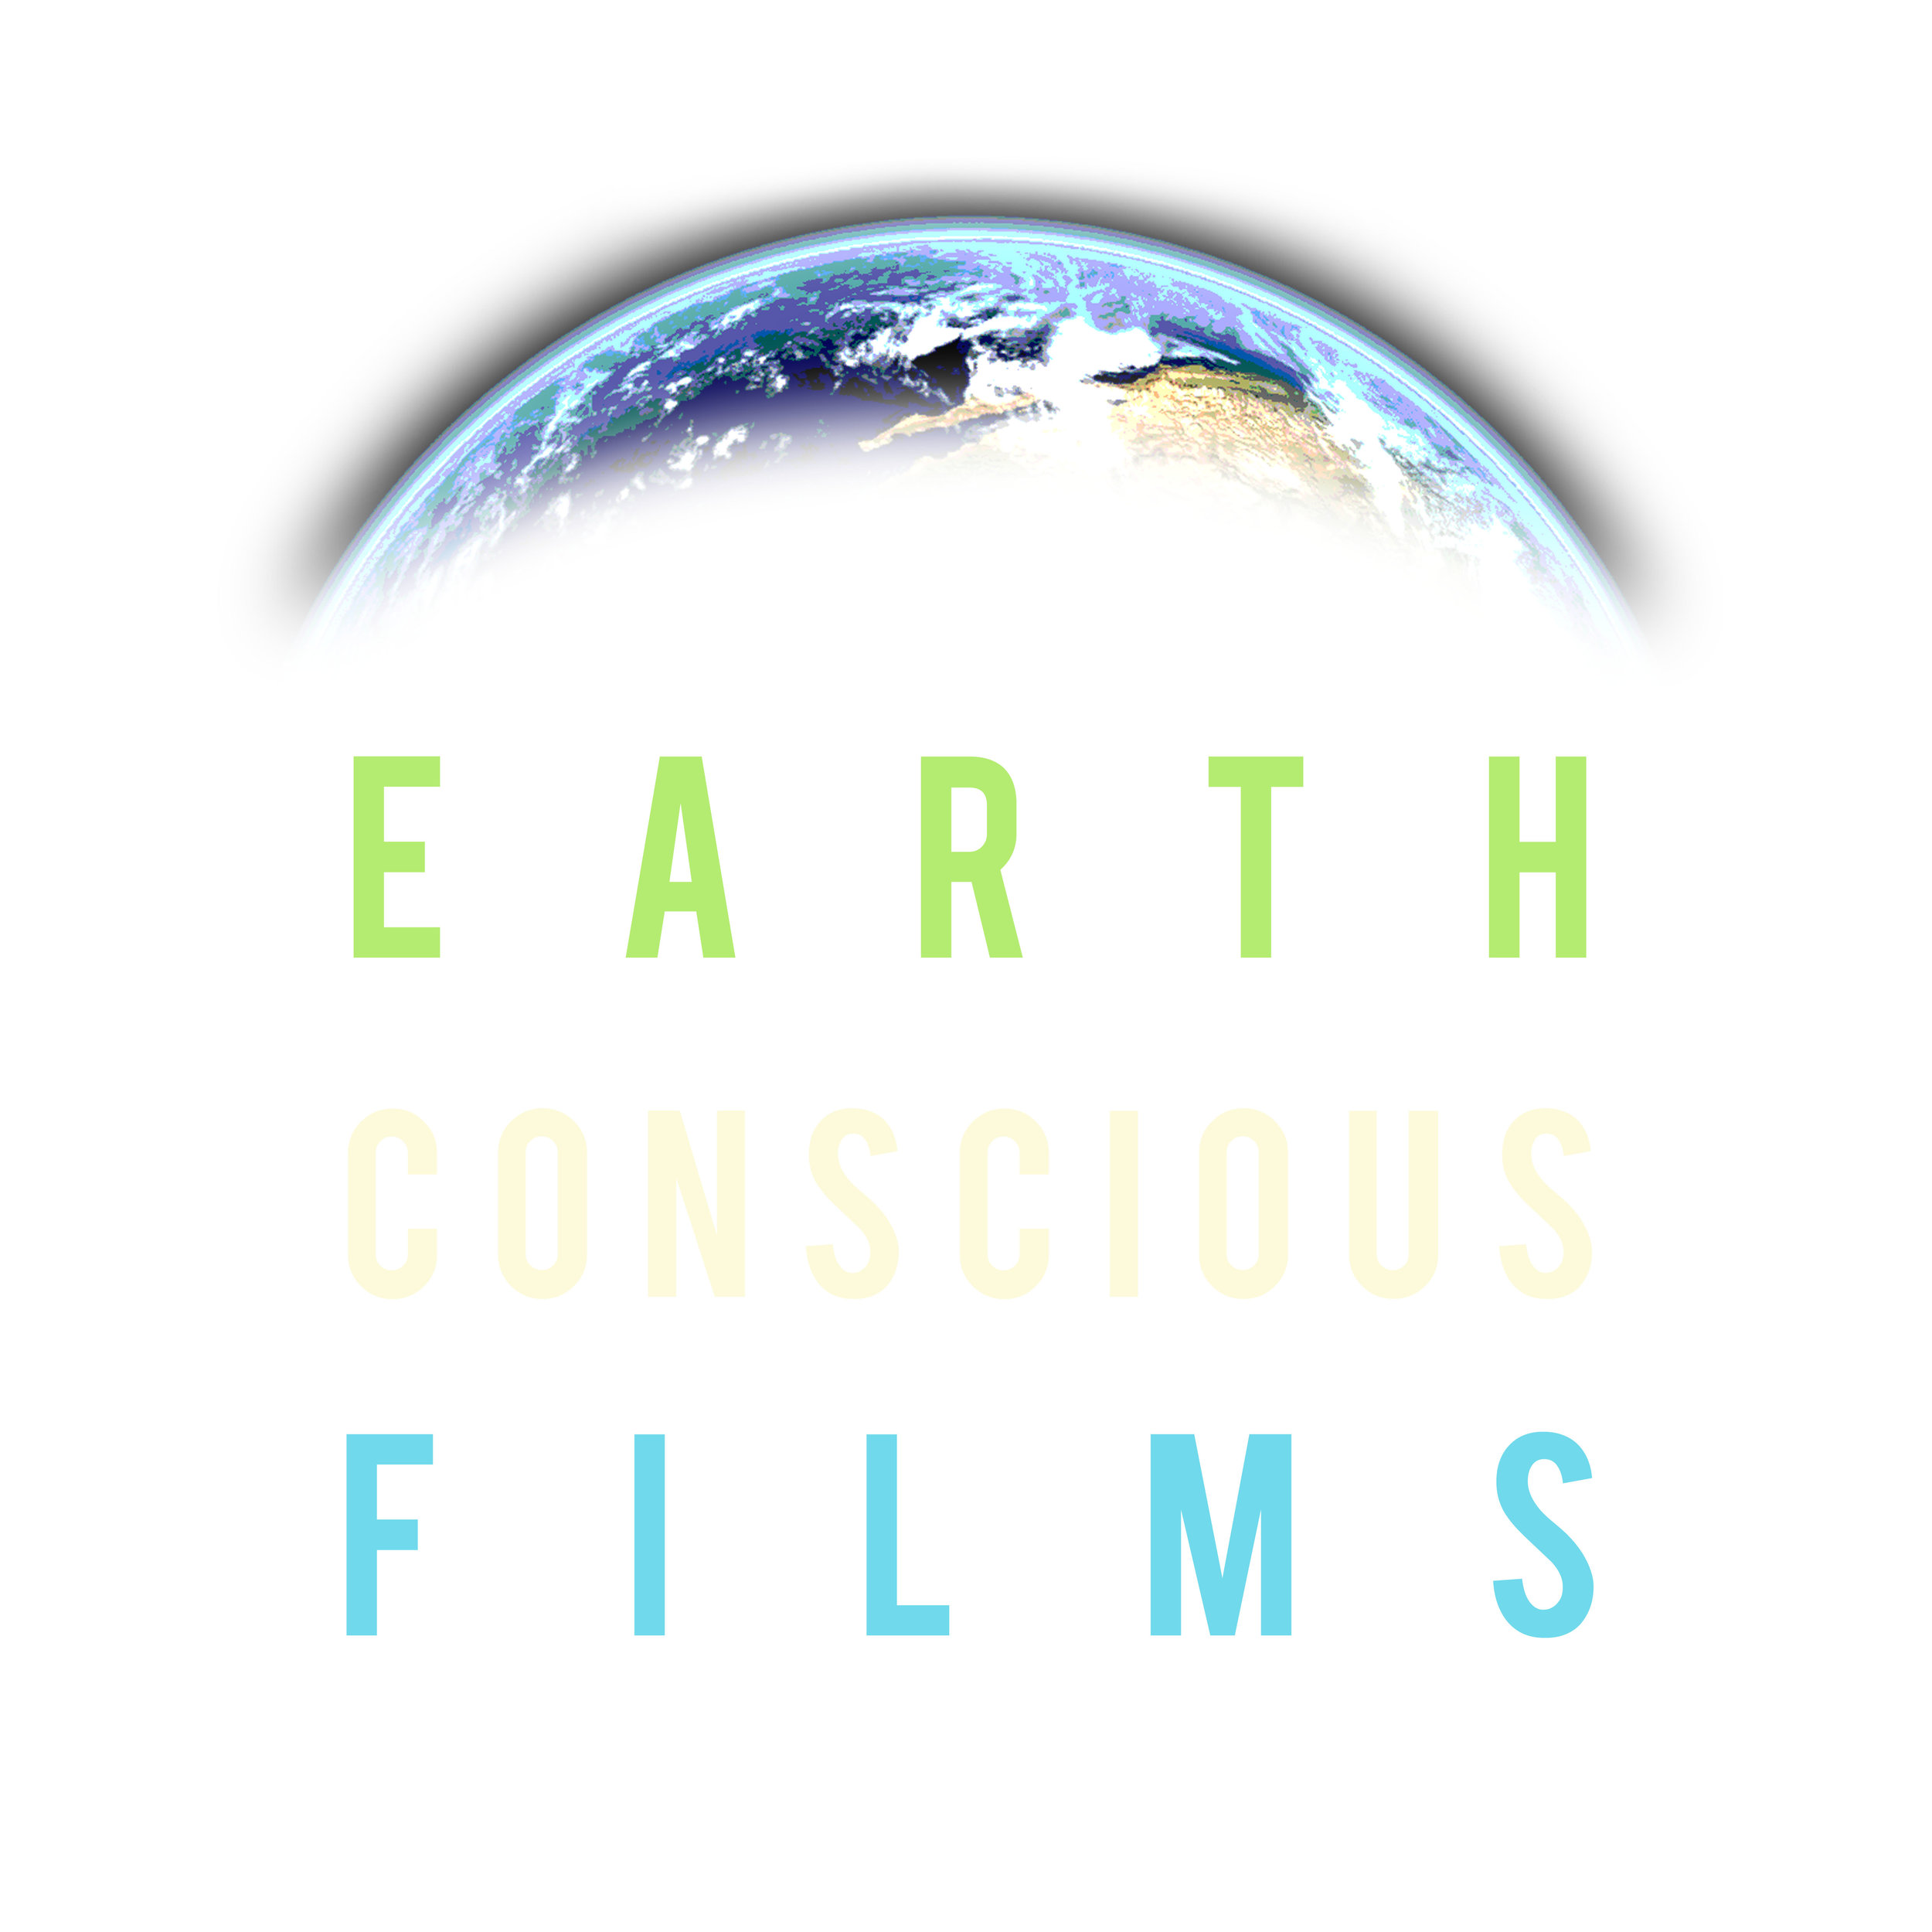 Earth Conscious Films - Earth Conscious Films was founded out of a desire to participate in solving problems in the world, and the capacity to do our part through film and video. Film and video have become the common language of the world, and by extension, the most powerful. We want to make solving fundamental problems more popular, more entertaining, and more satisfying than the perpetuation of fear.https://vimeo.com/earthconsciousfilms